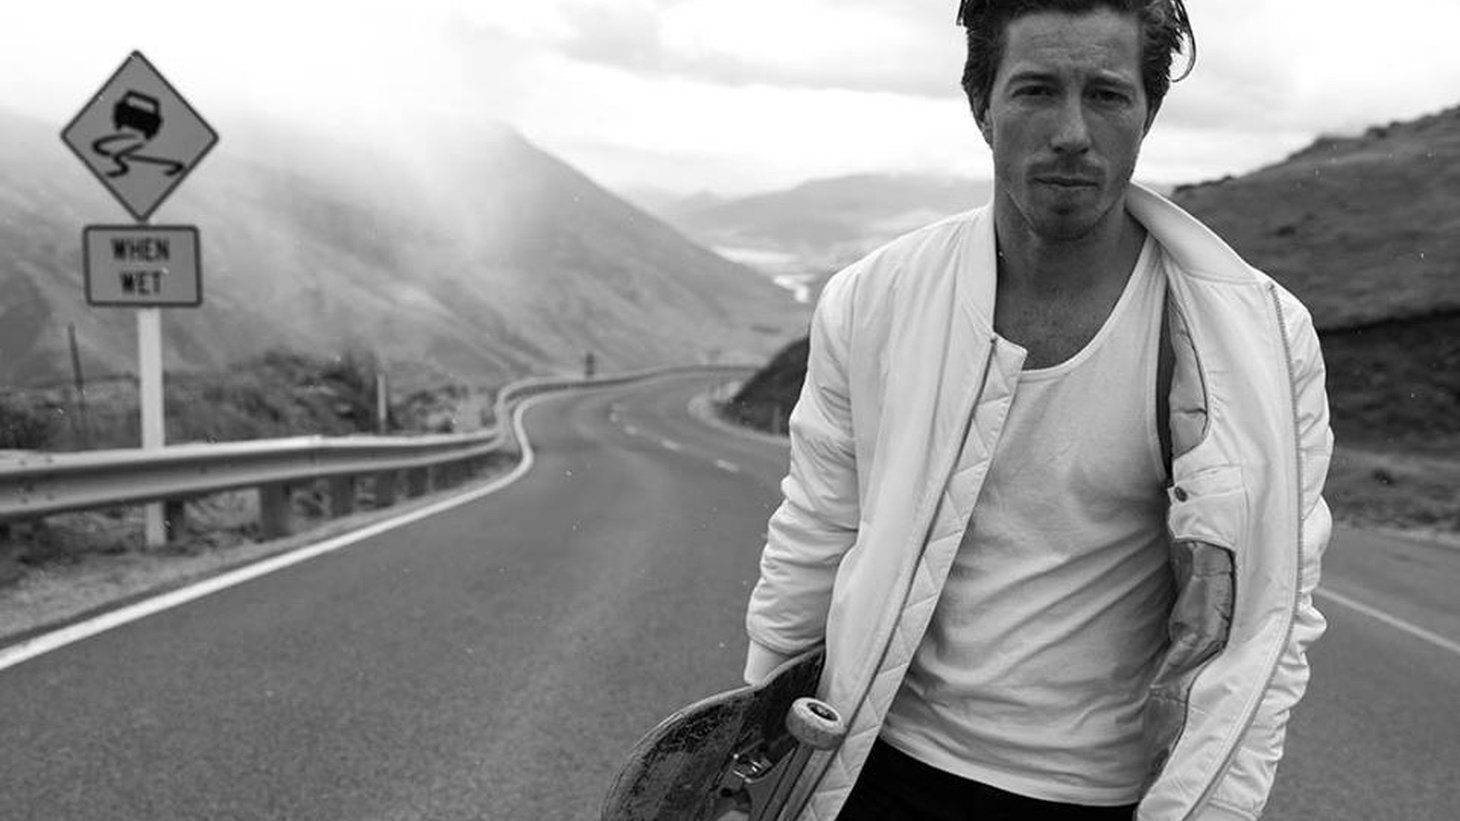 Professional snowboarder, skateboarder and two-time Olympic gold medalist Shaun White joins us for a Guest DJ set.